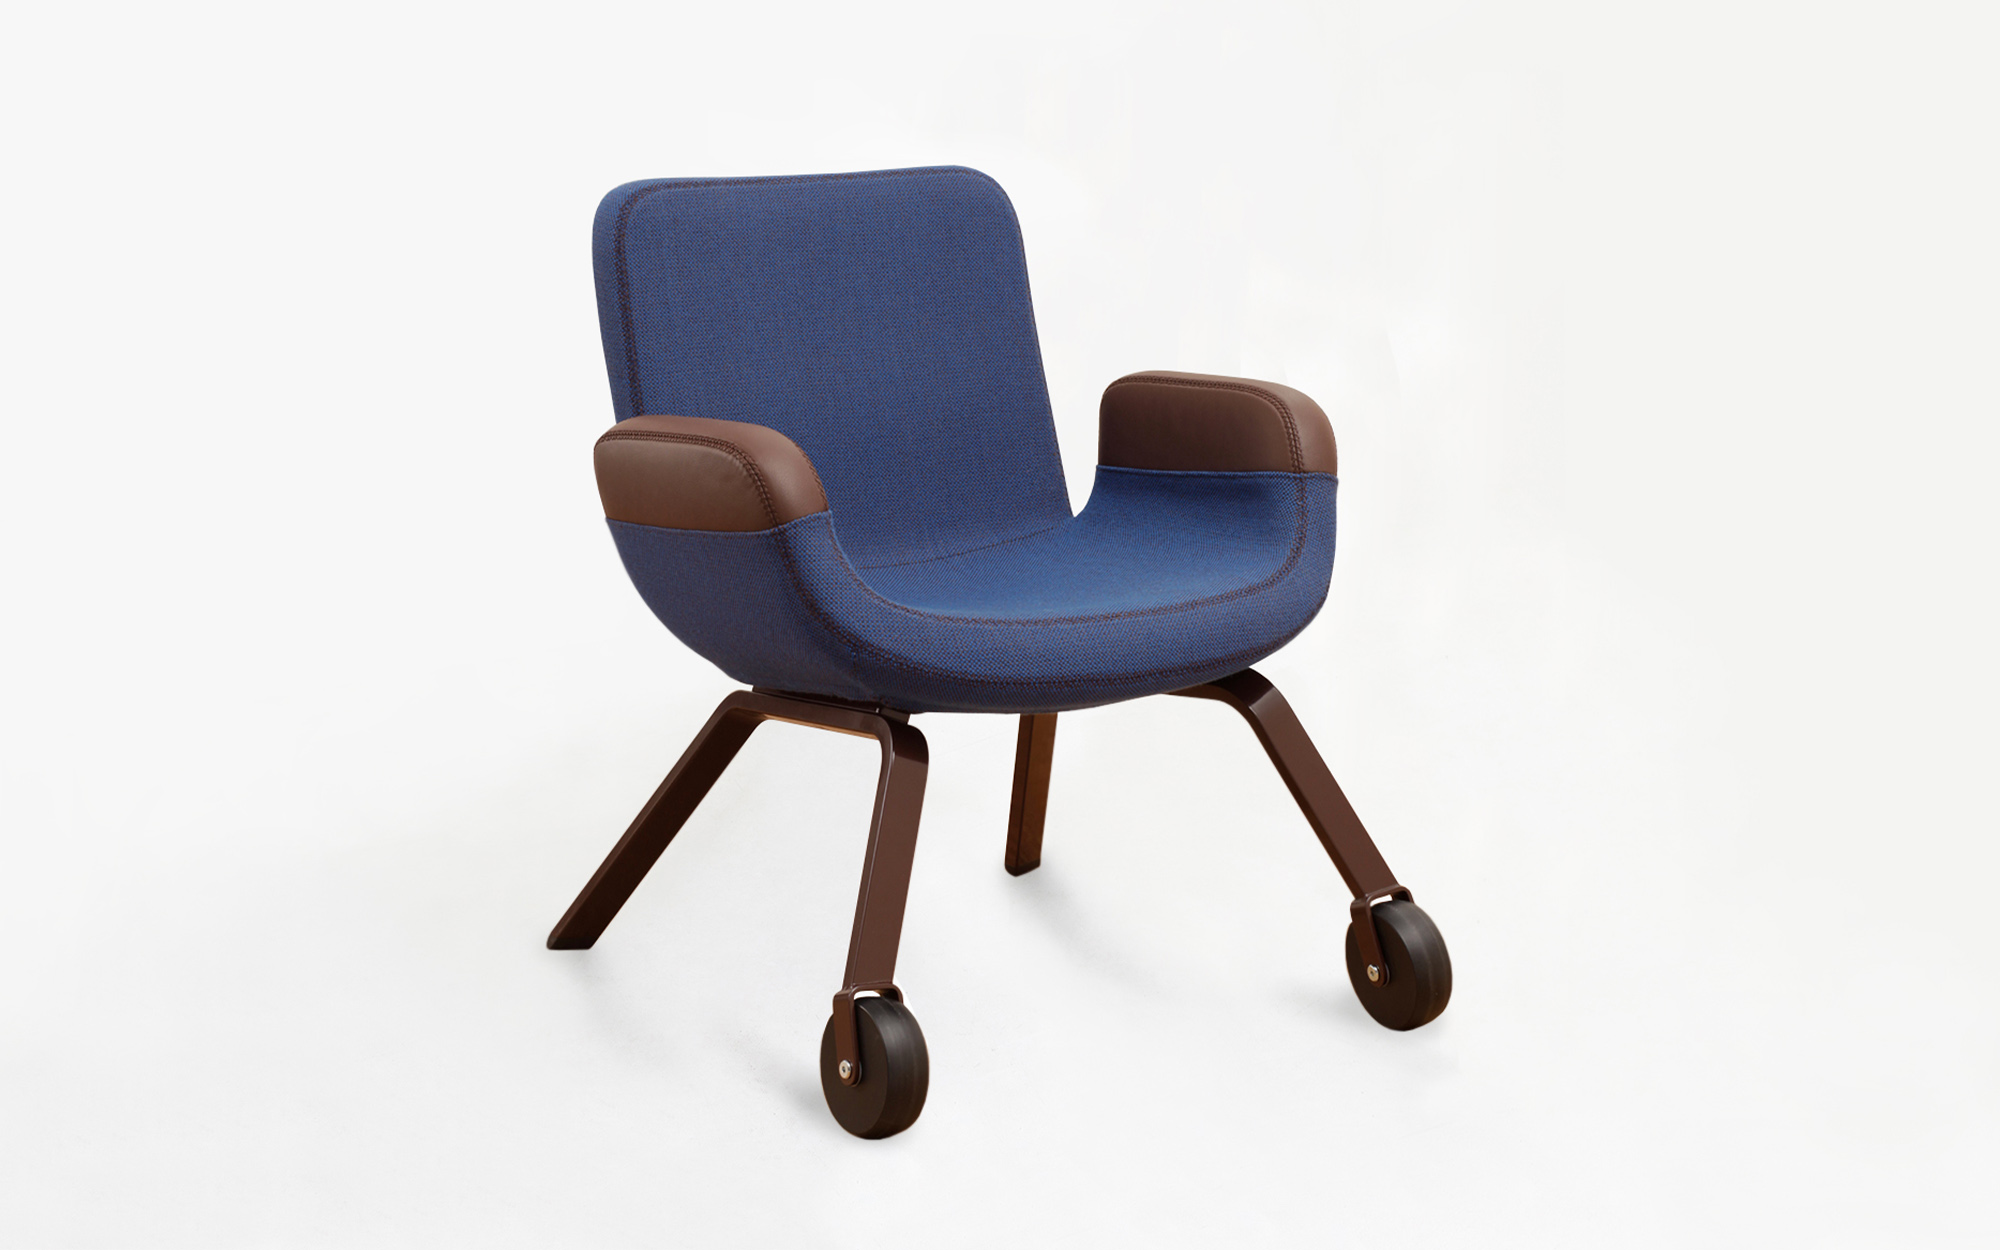 Hella Jongerius UN Lounge Chair